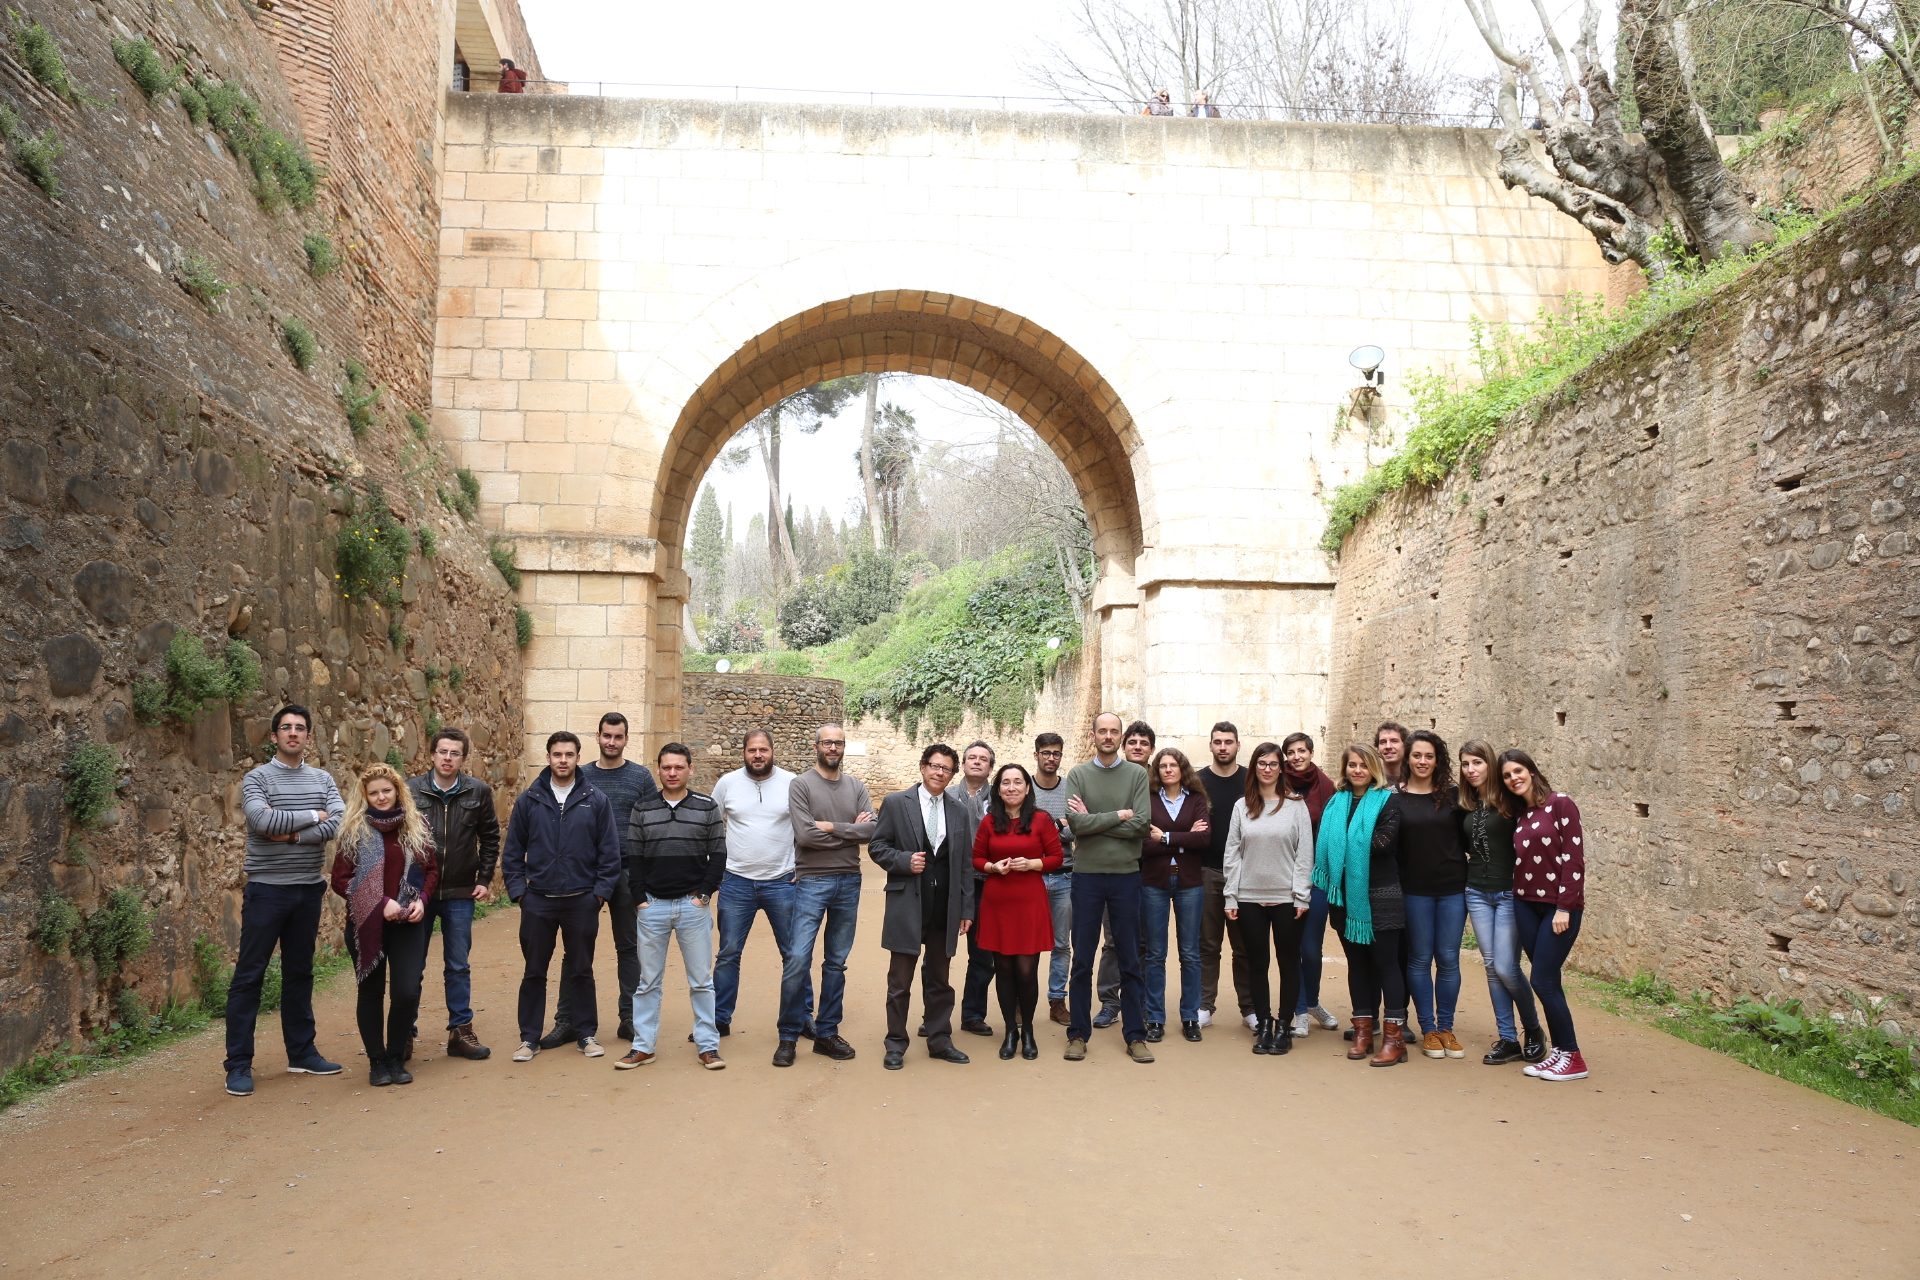 International experts gather at the Alhambra to debate about energy efficiency in historic buildings